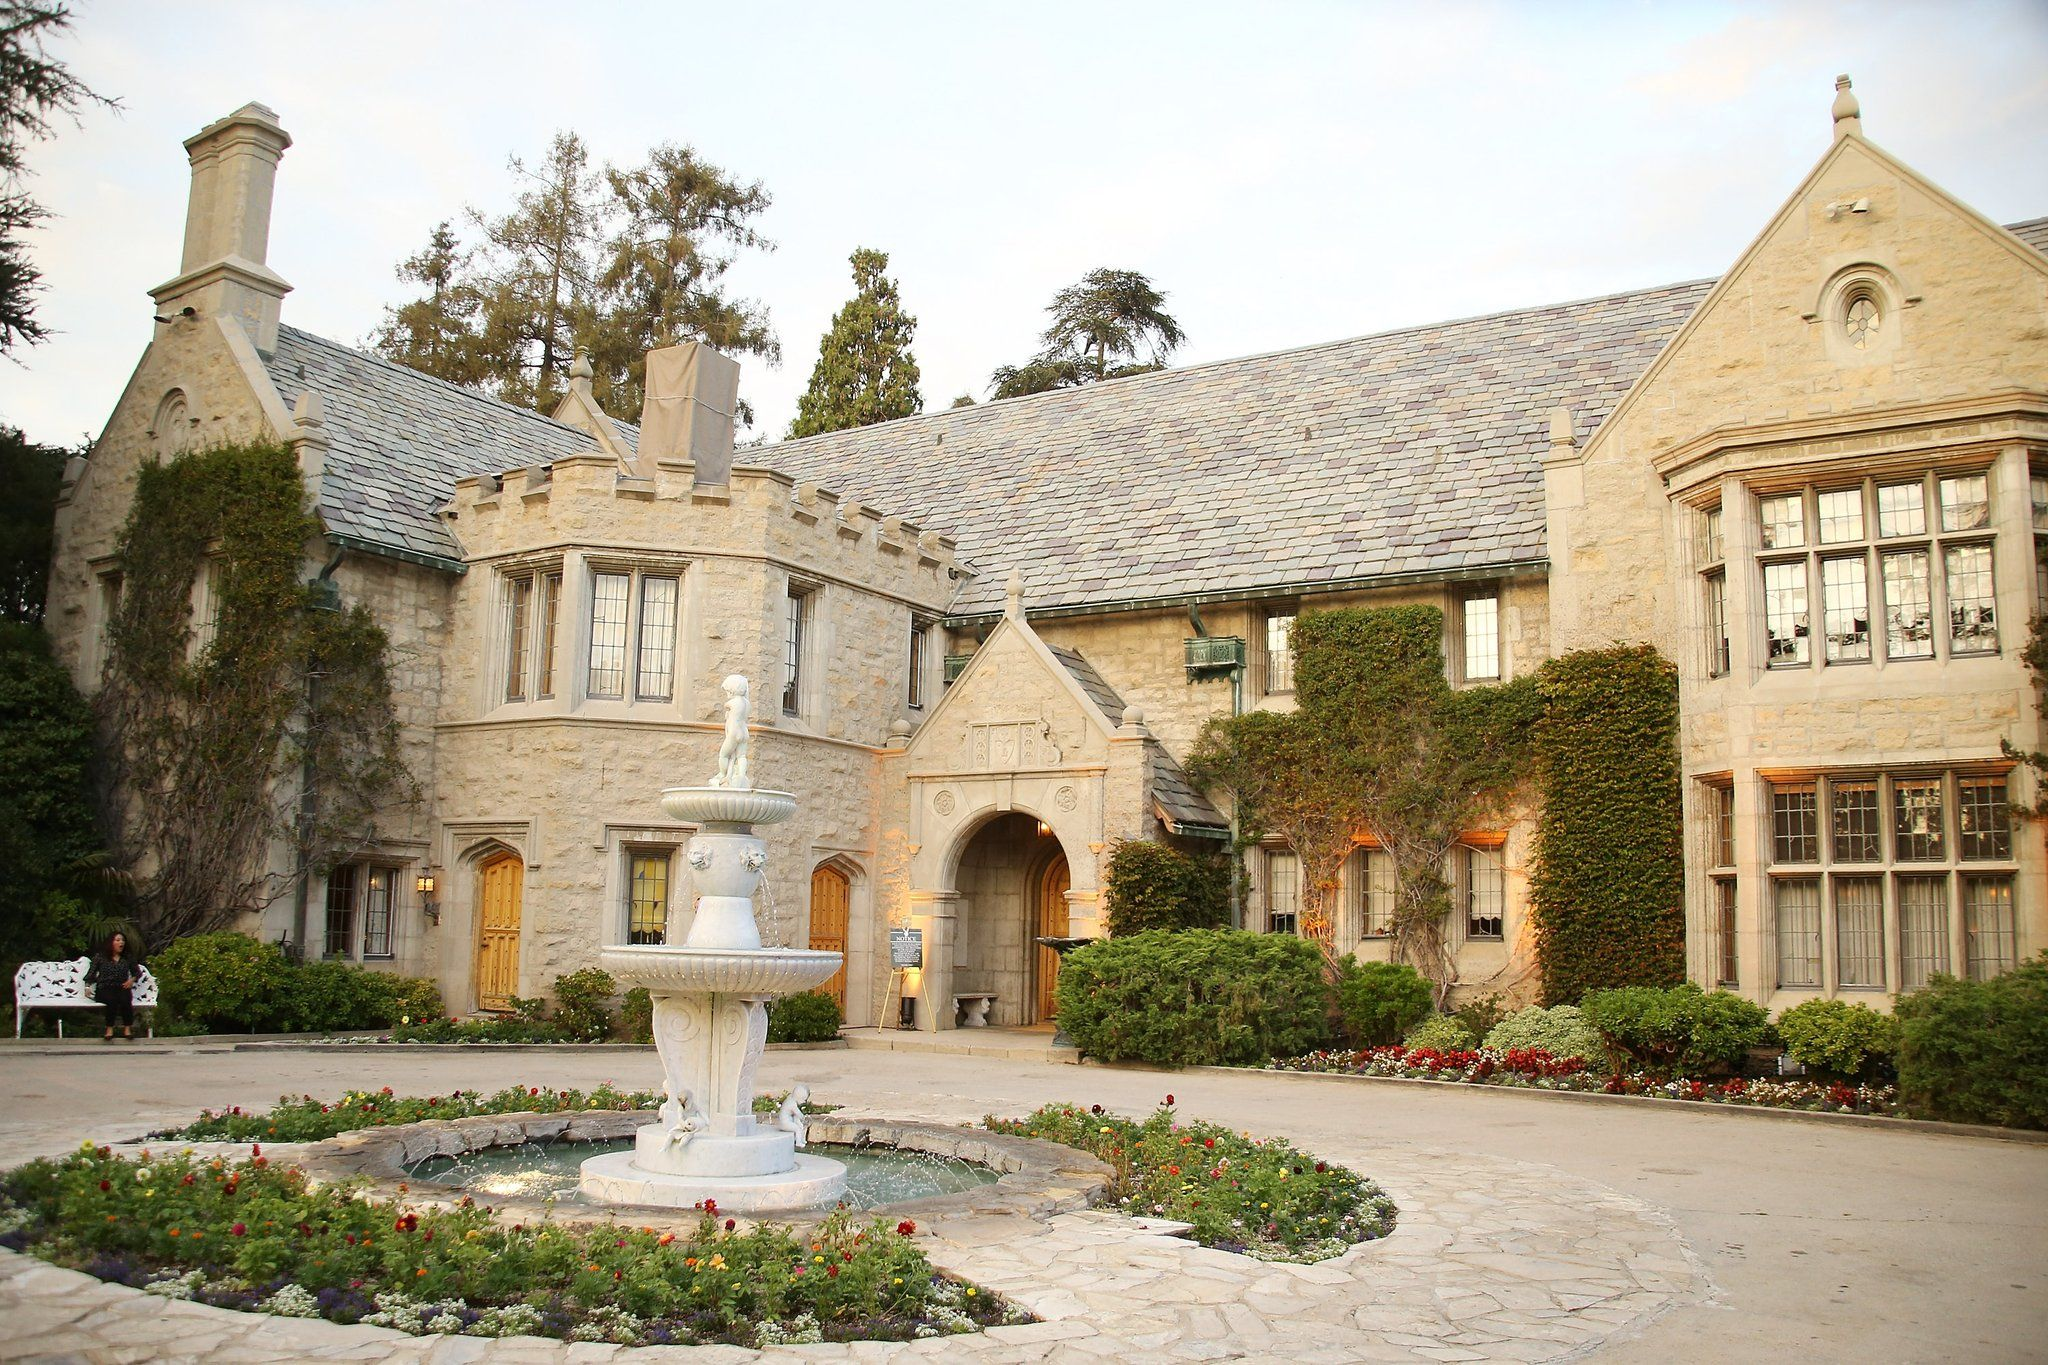 The Rumors Are Wrong The Deal to Sell the Playboy Mansion Has NOT